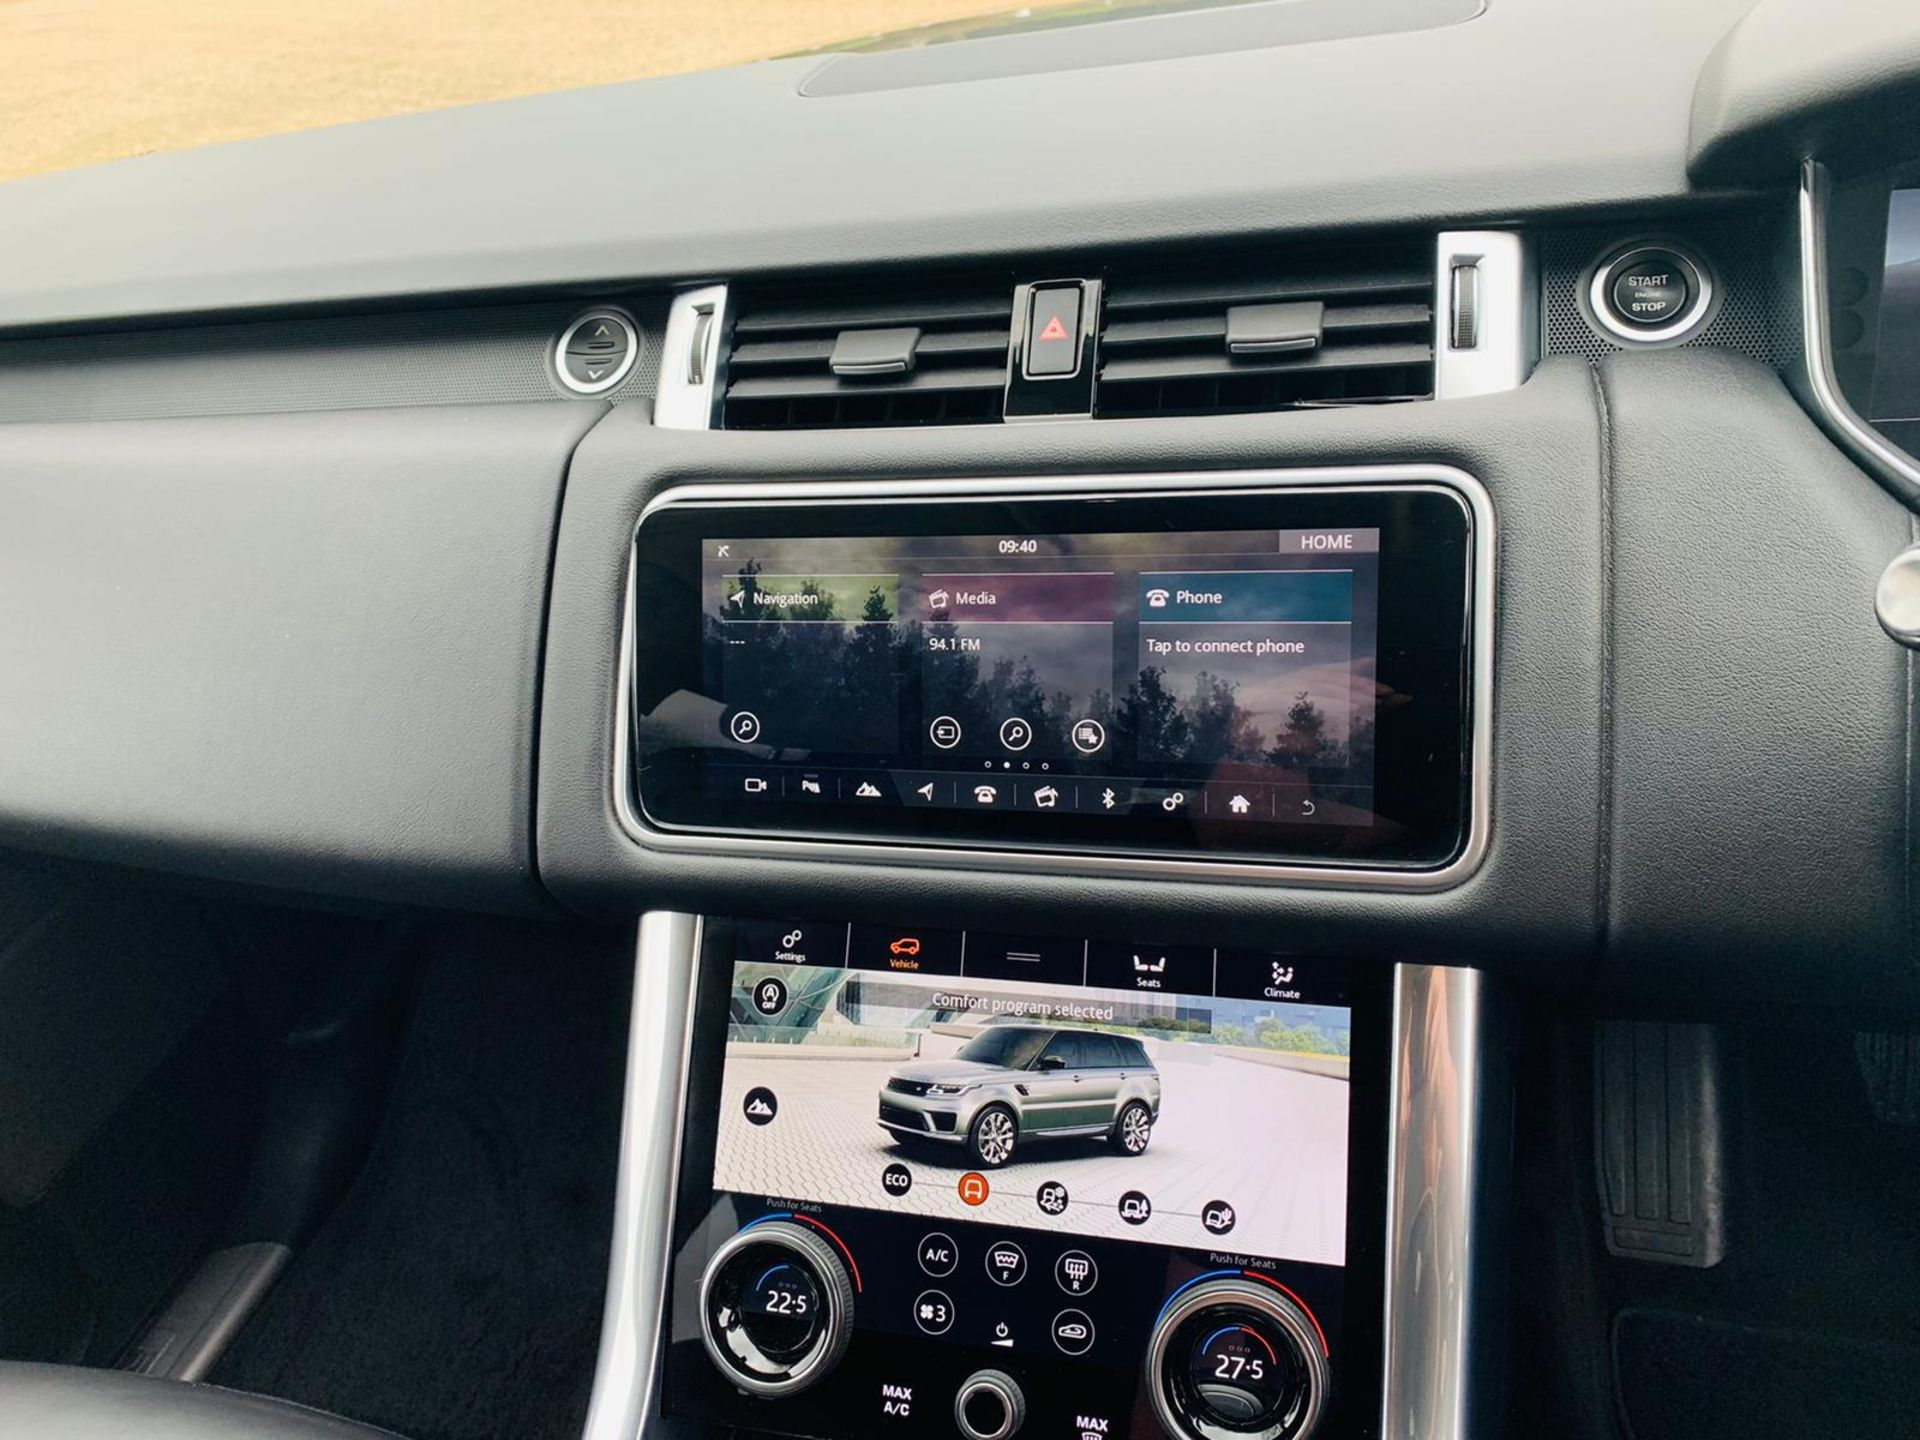 (RESERVE MET) Range Rover Sport 3.0 SDV6 HSE Auto - 2019 - 1 Keeper From New - Virtual Cockpit - - Image 17 of 42